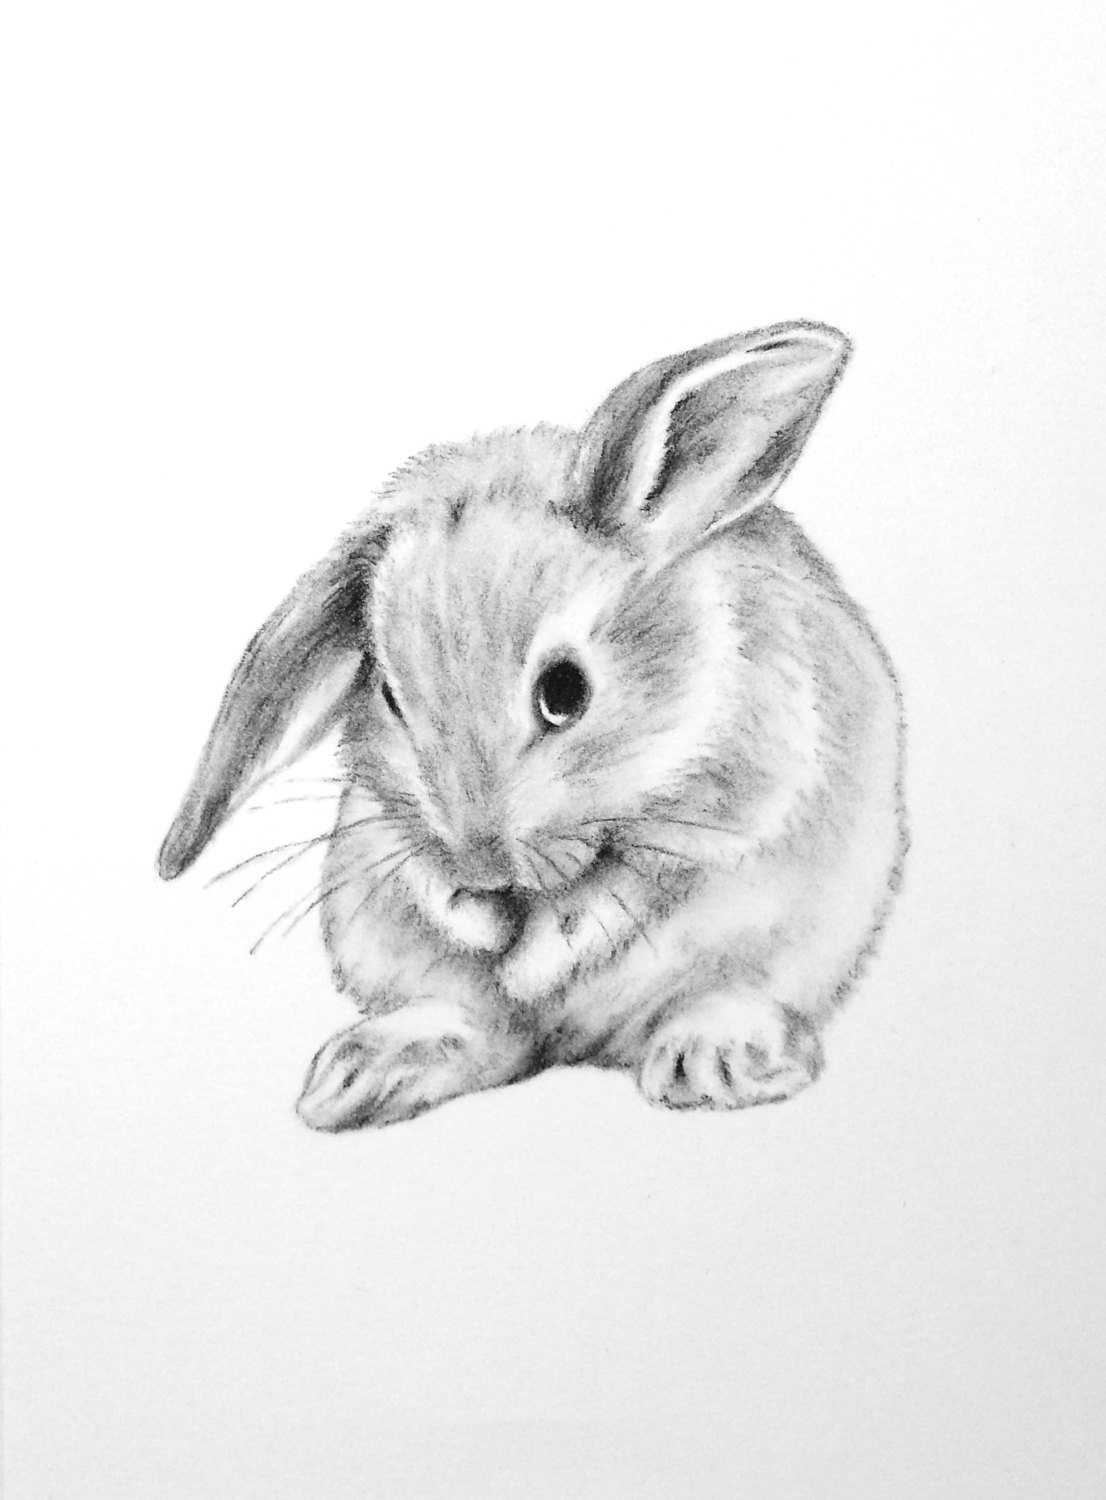 Drawn rabbit lop rabbit Drawing eared Lop photo#6 Drawing